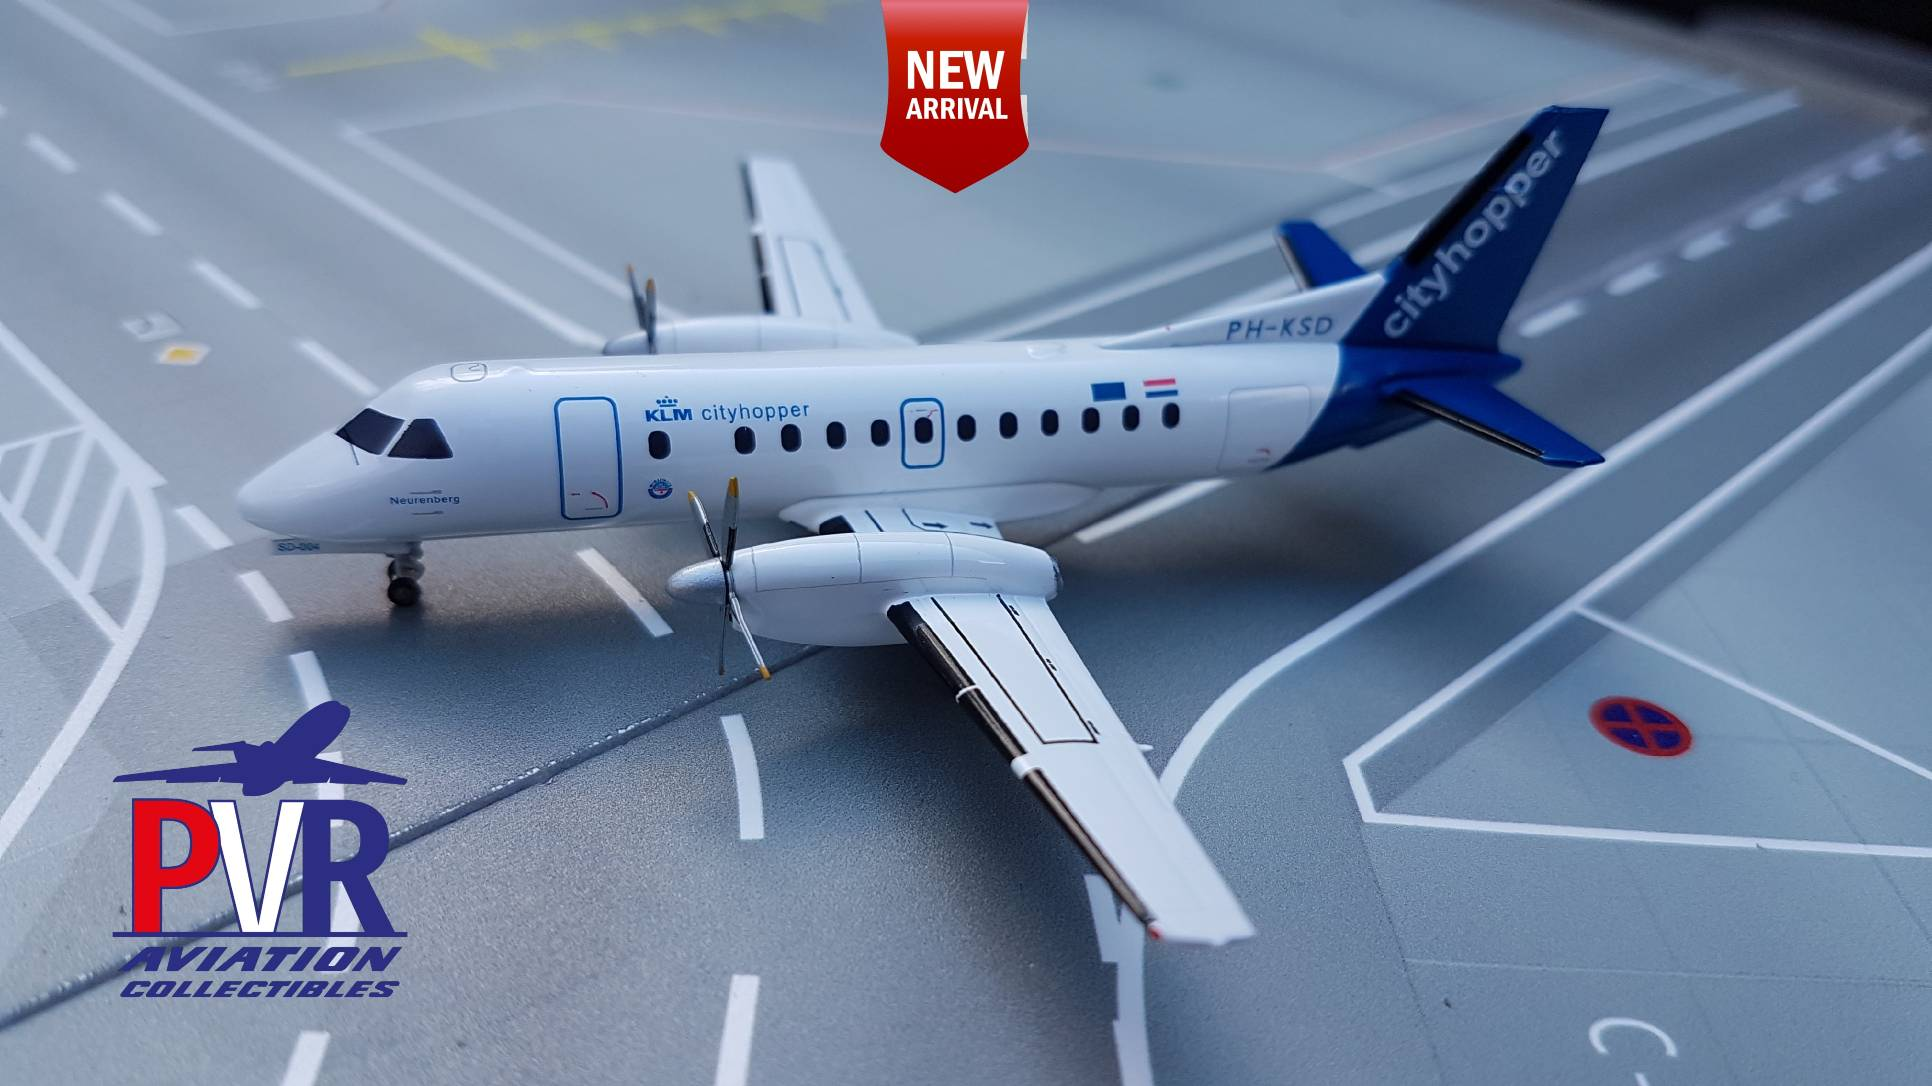 Saab 340 KLM Cityhopper from €65 now €50!!